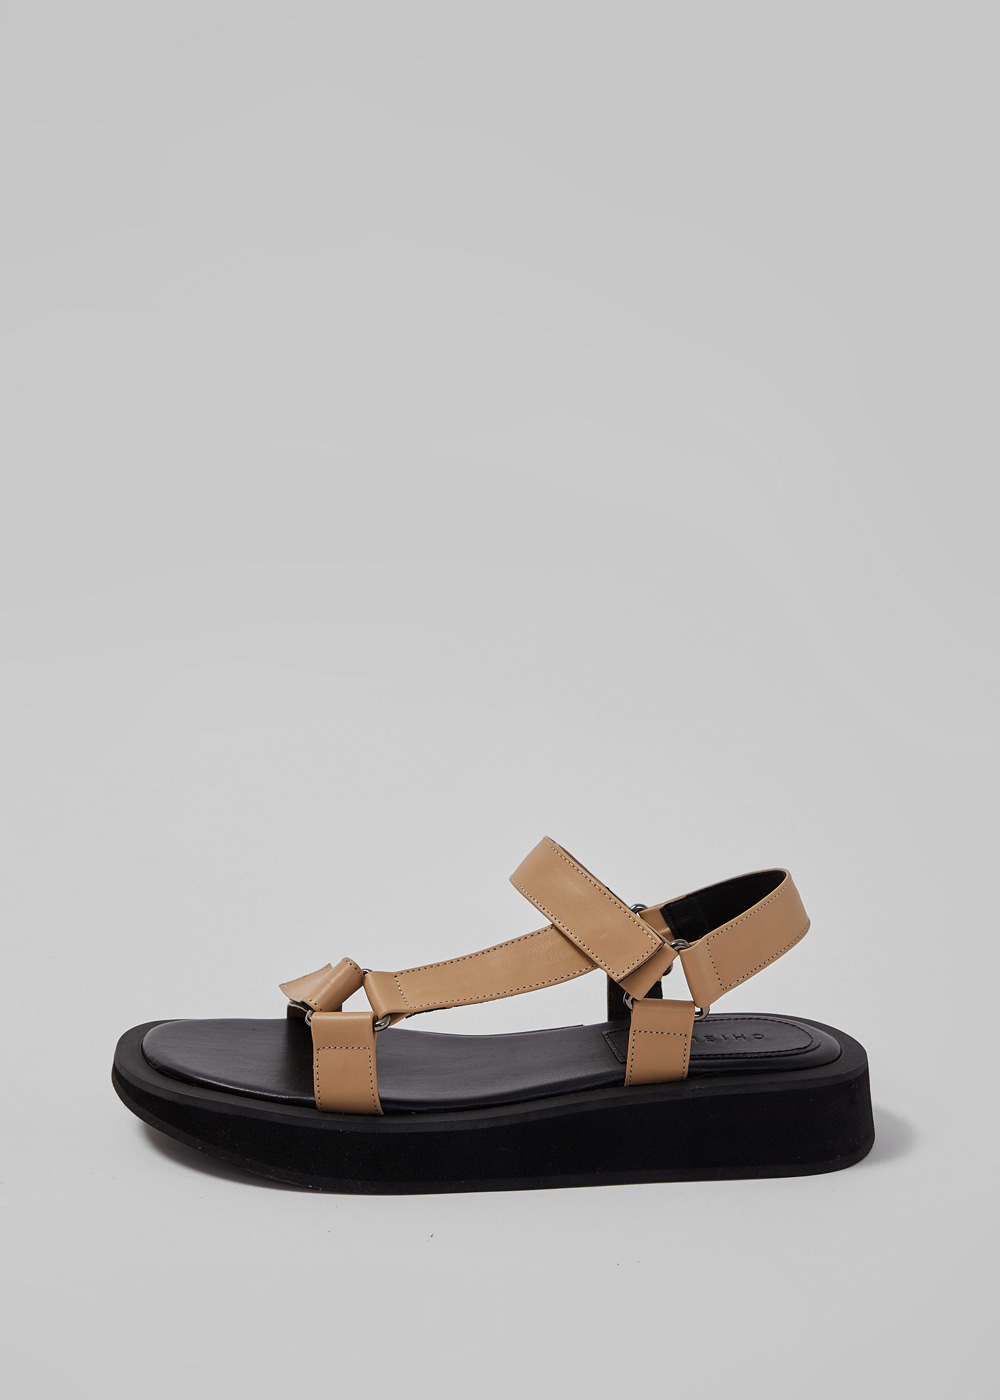 GO-OUT SANDAL [C1S06 TN]